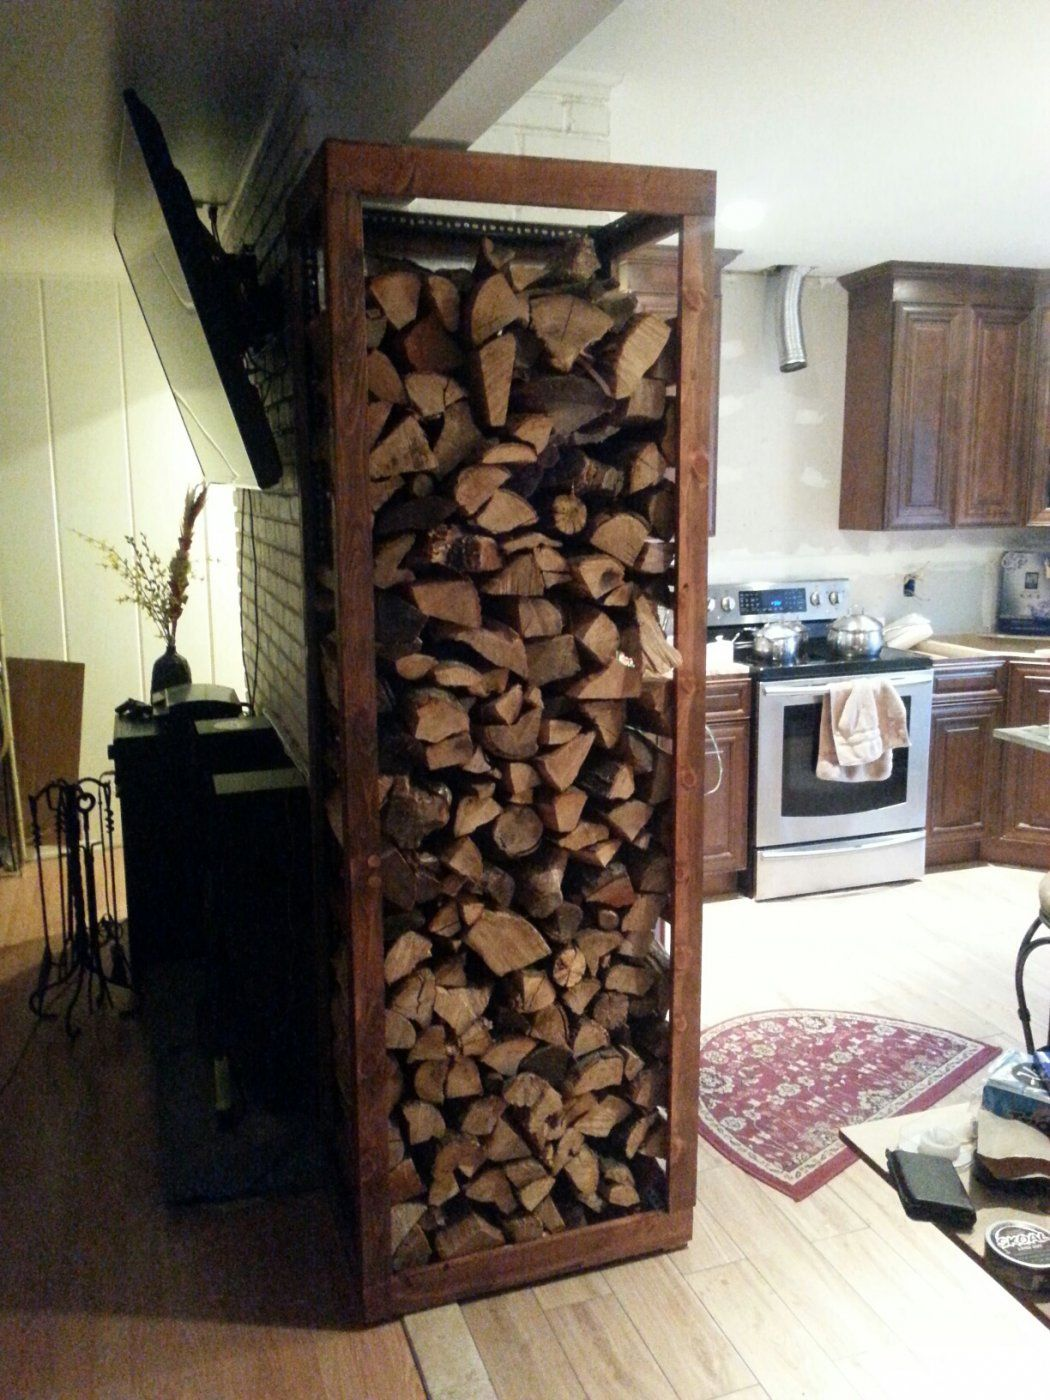 indoor wood rack | Hearth.com Forums Home | firewood | Pinterest ...